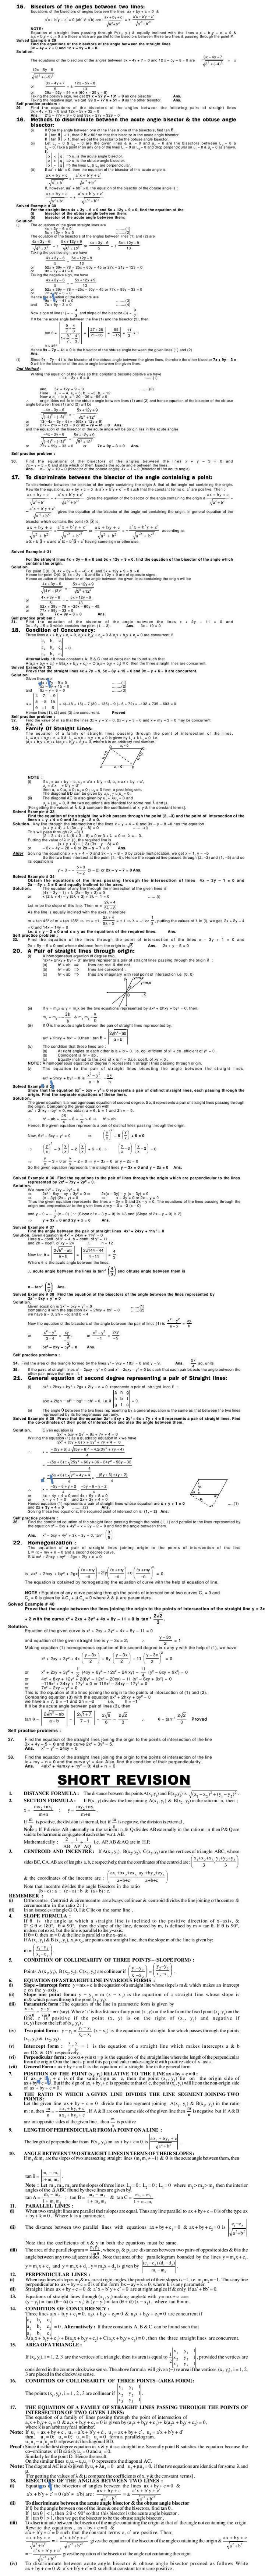 Maths Study Material - Chapter 17